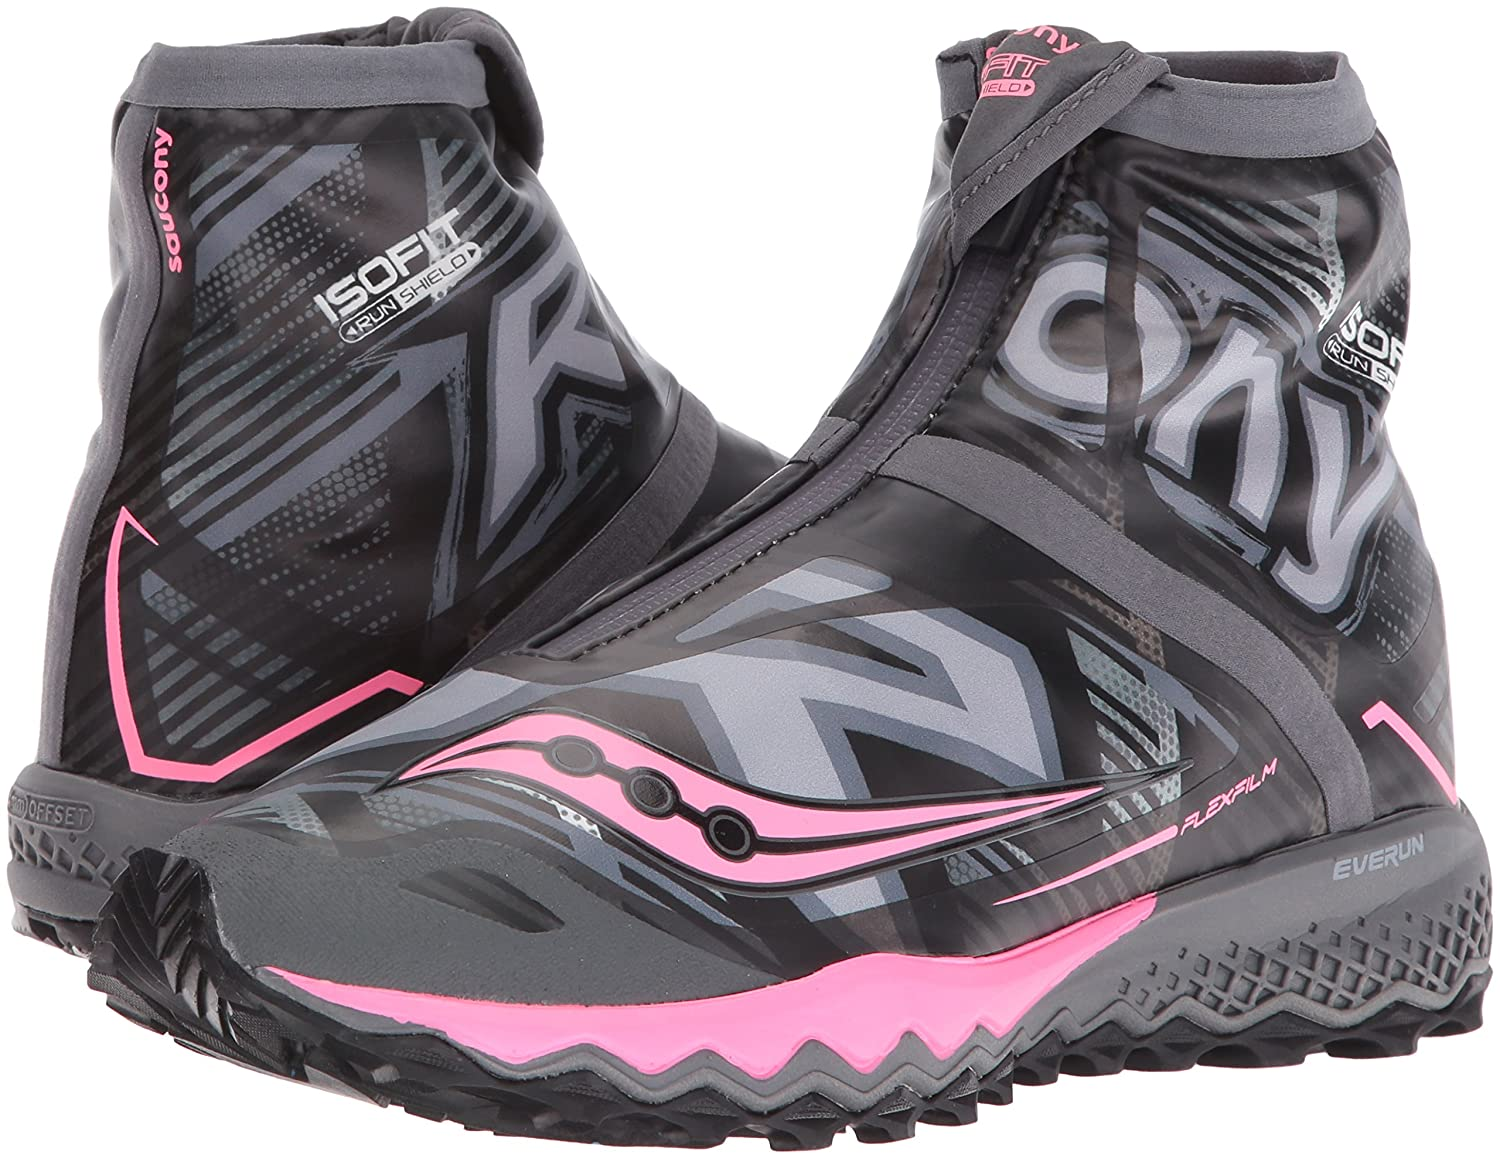 Saucony Women's Razor Ice+ Trail Running US|Black/White/Combo Shoe B018F9HSUC 7 B(M) US|Black/White/Combo Running 4133ca